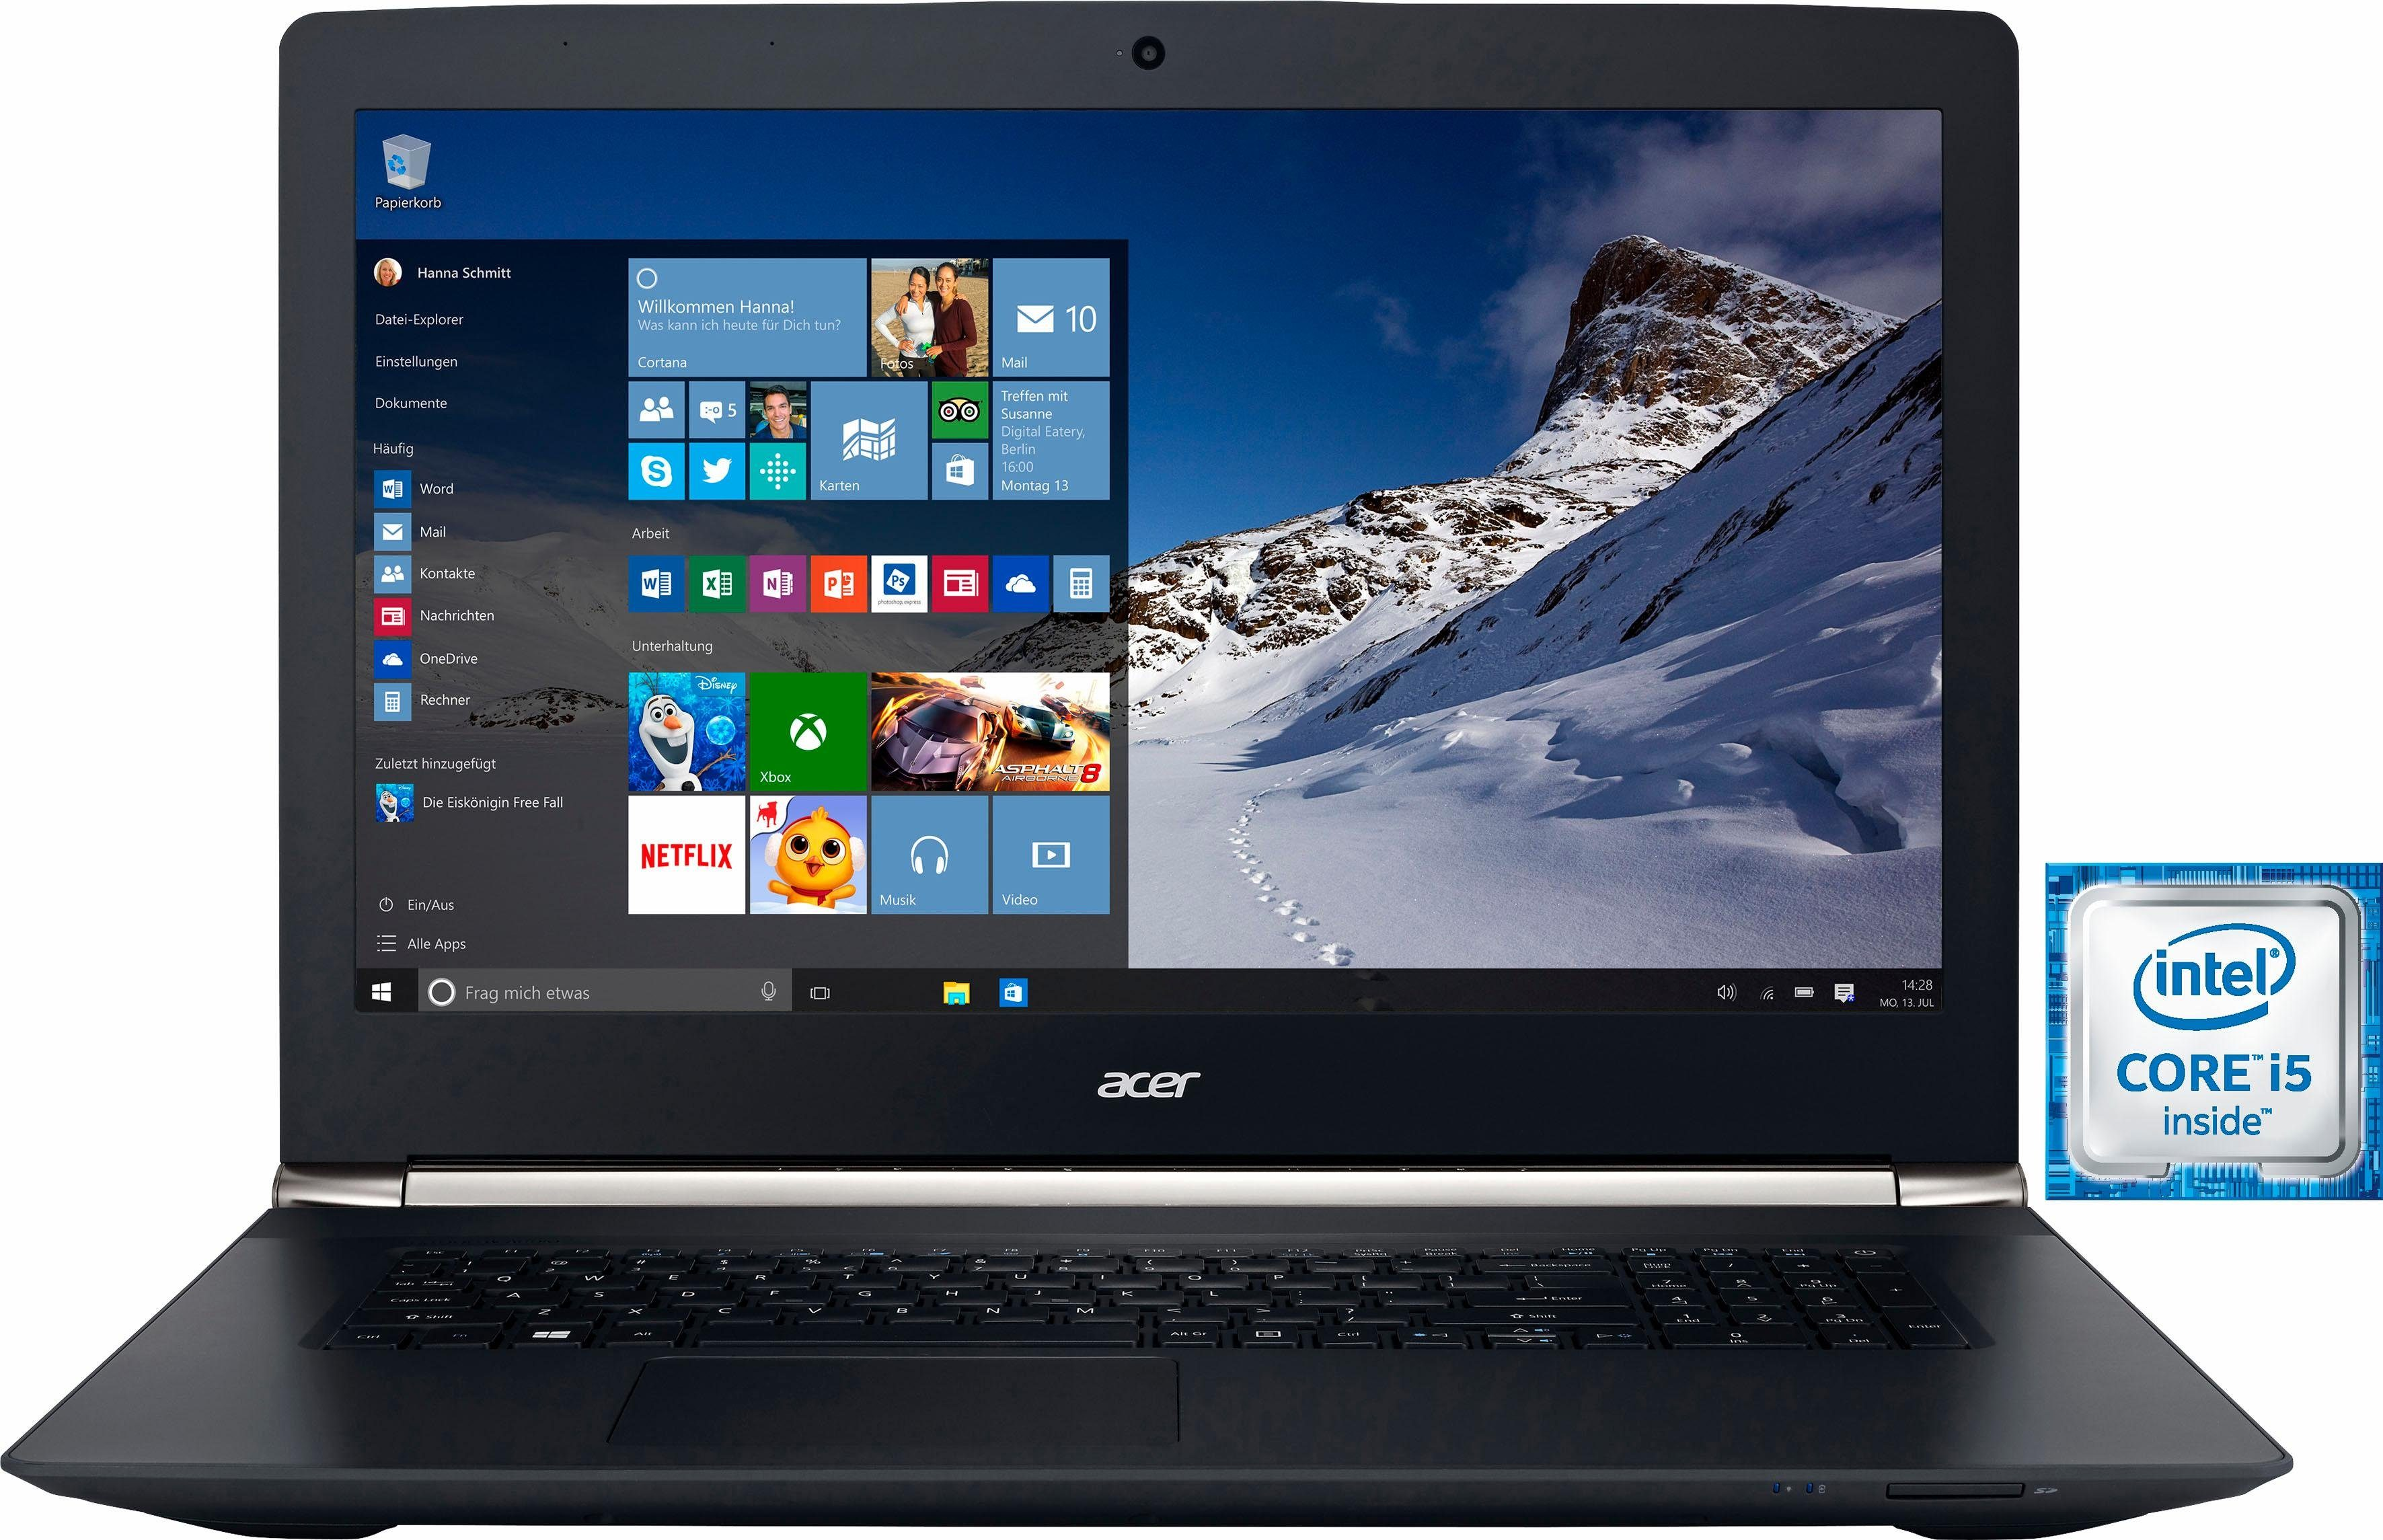 Acer Aspire VN7-792G-50N1 Notebook, Intel® Core™ i5, 43,9 cm (17,3 Zoll), 1128 GB Speicher